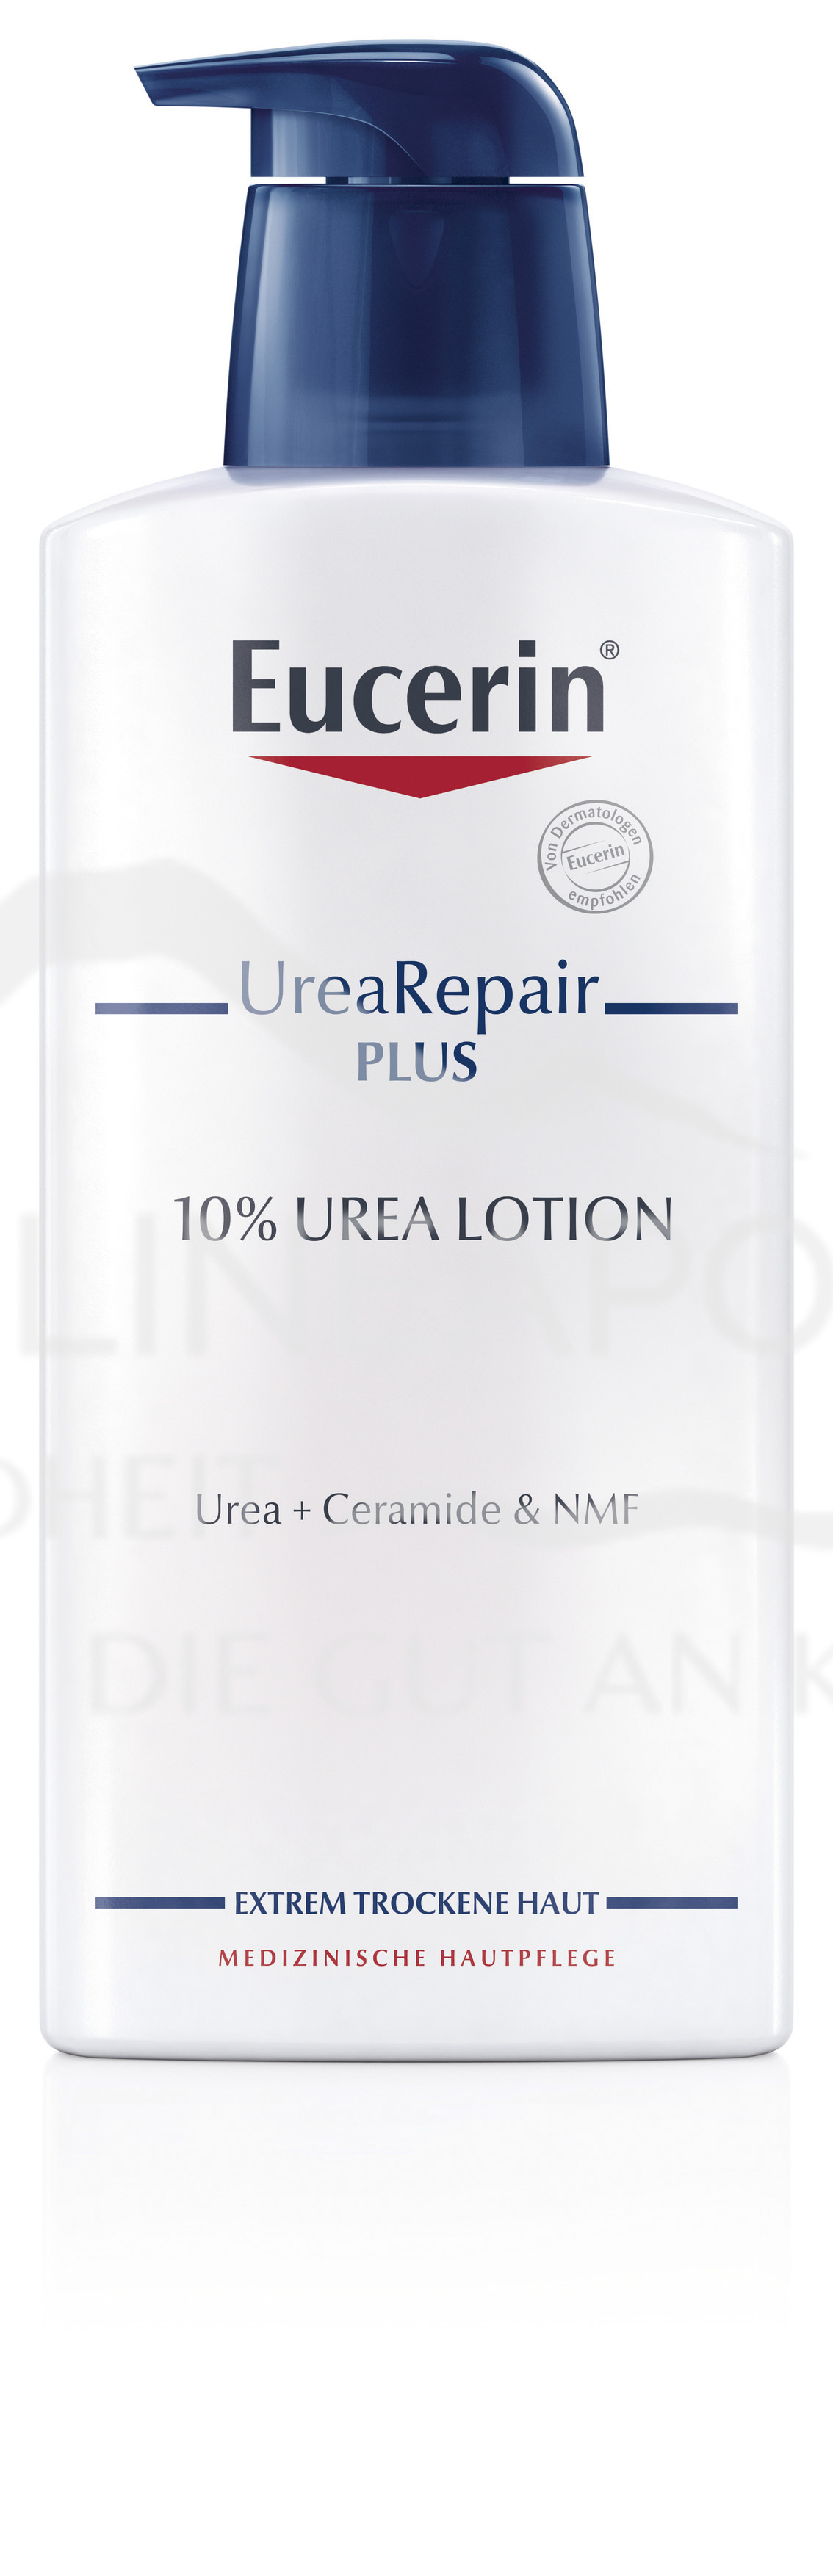 Eucerin Complete Repair Lotion 10% Urea